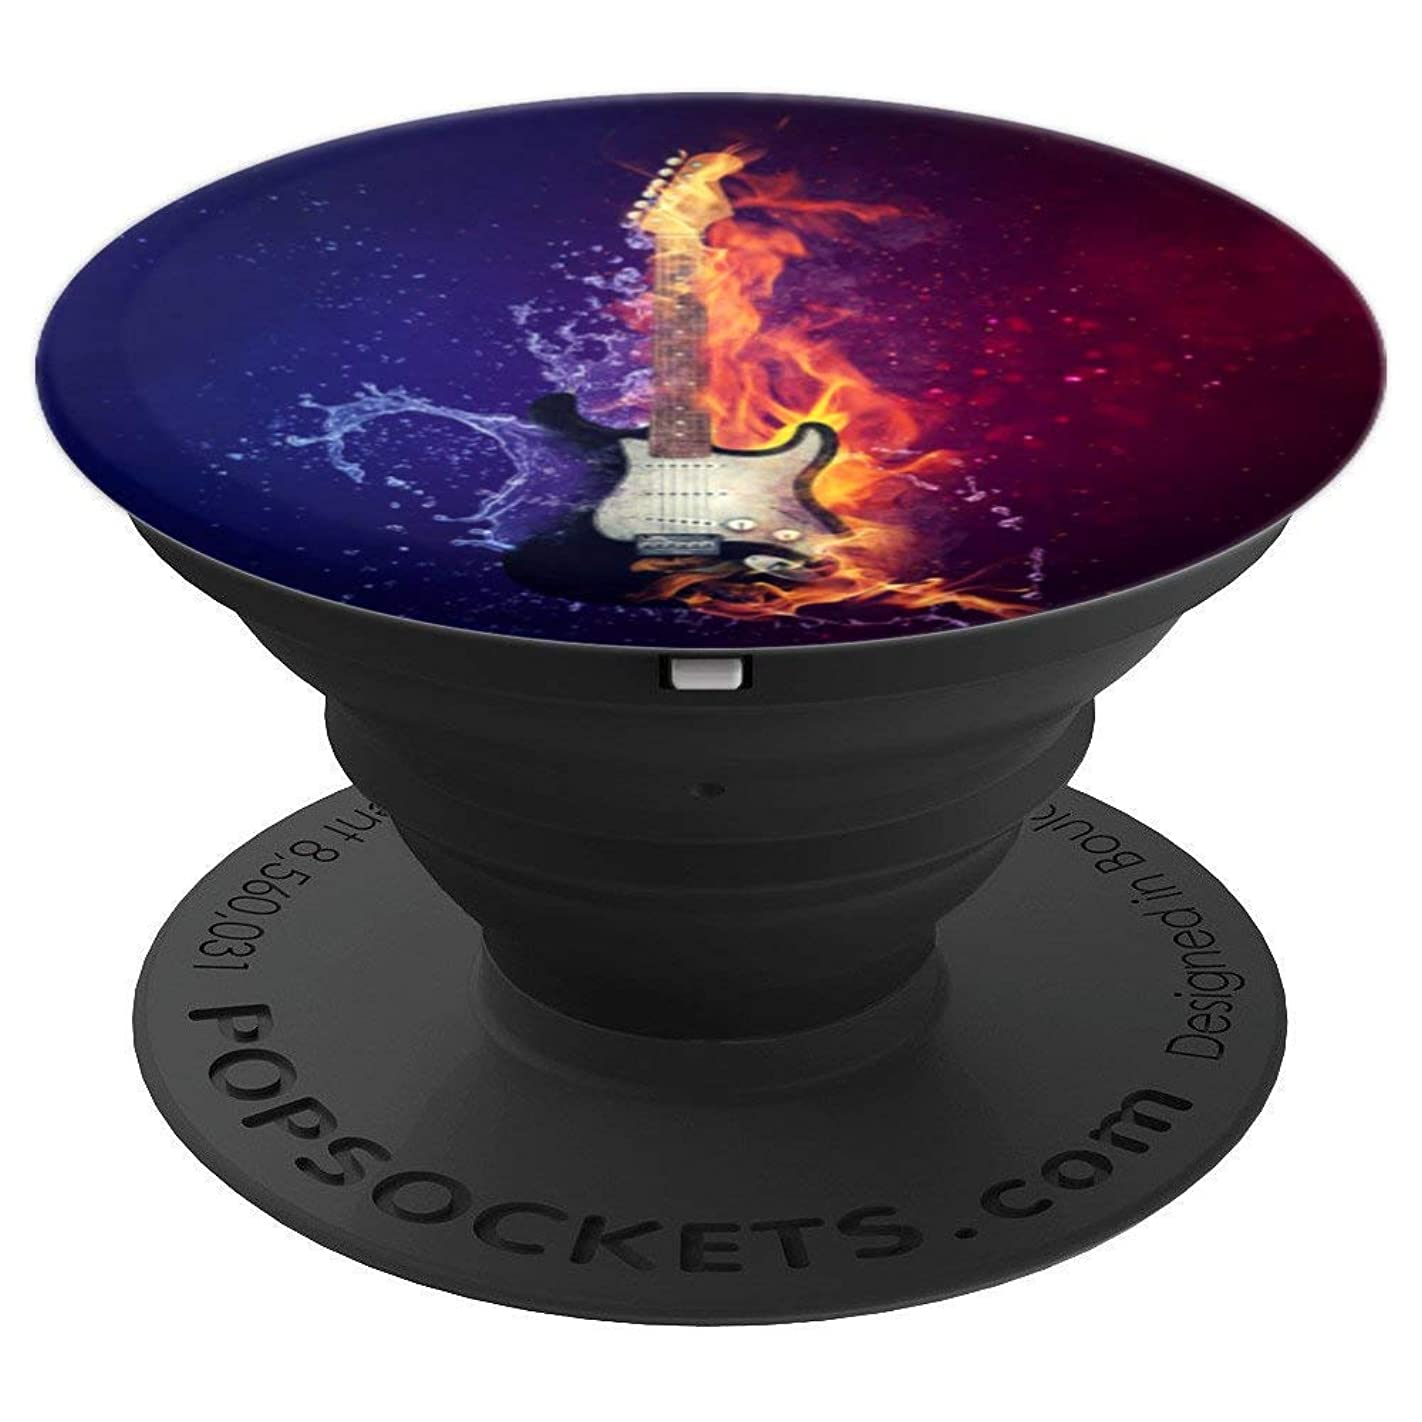 Metal Electric Guitar - Black & White - Colorful Background - PopSockets Grip and Stand for Phones and Tablets t65116567878